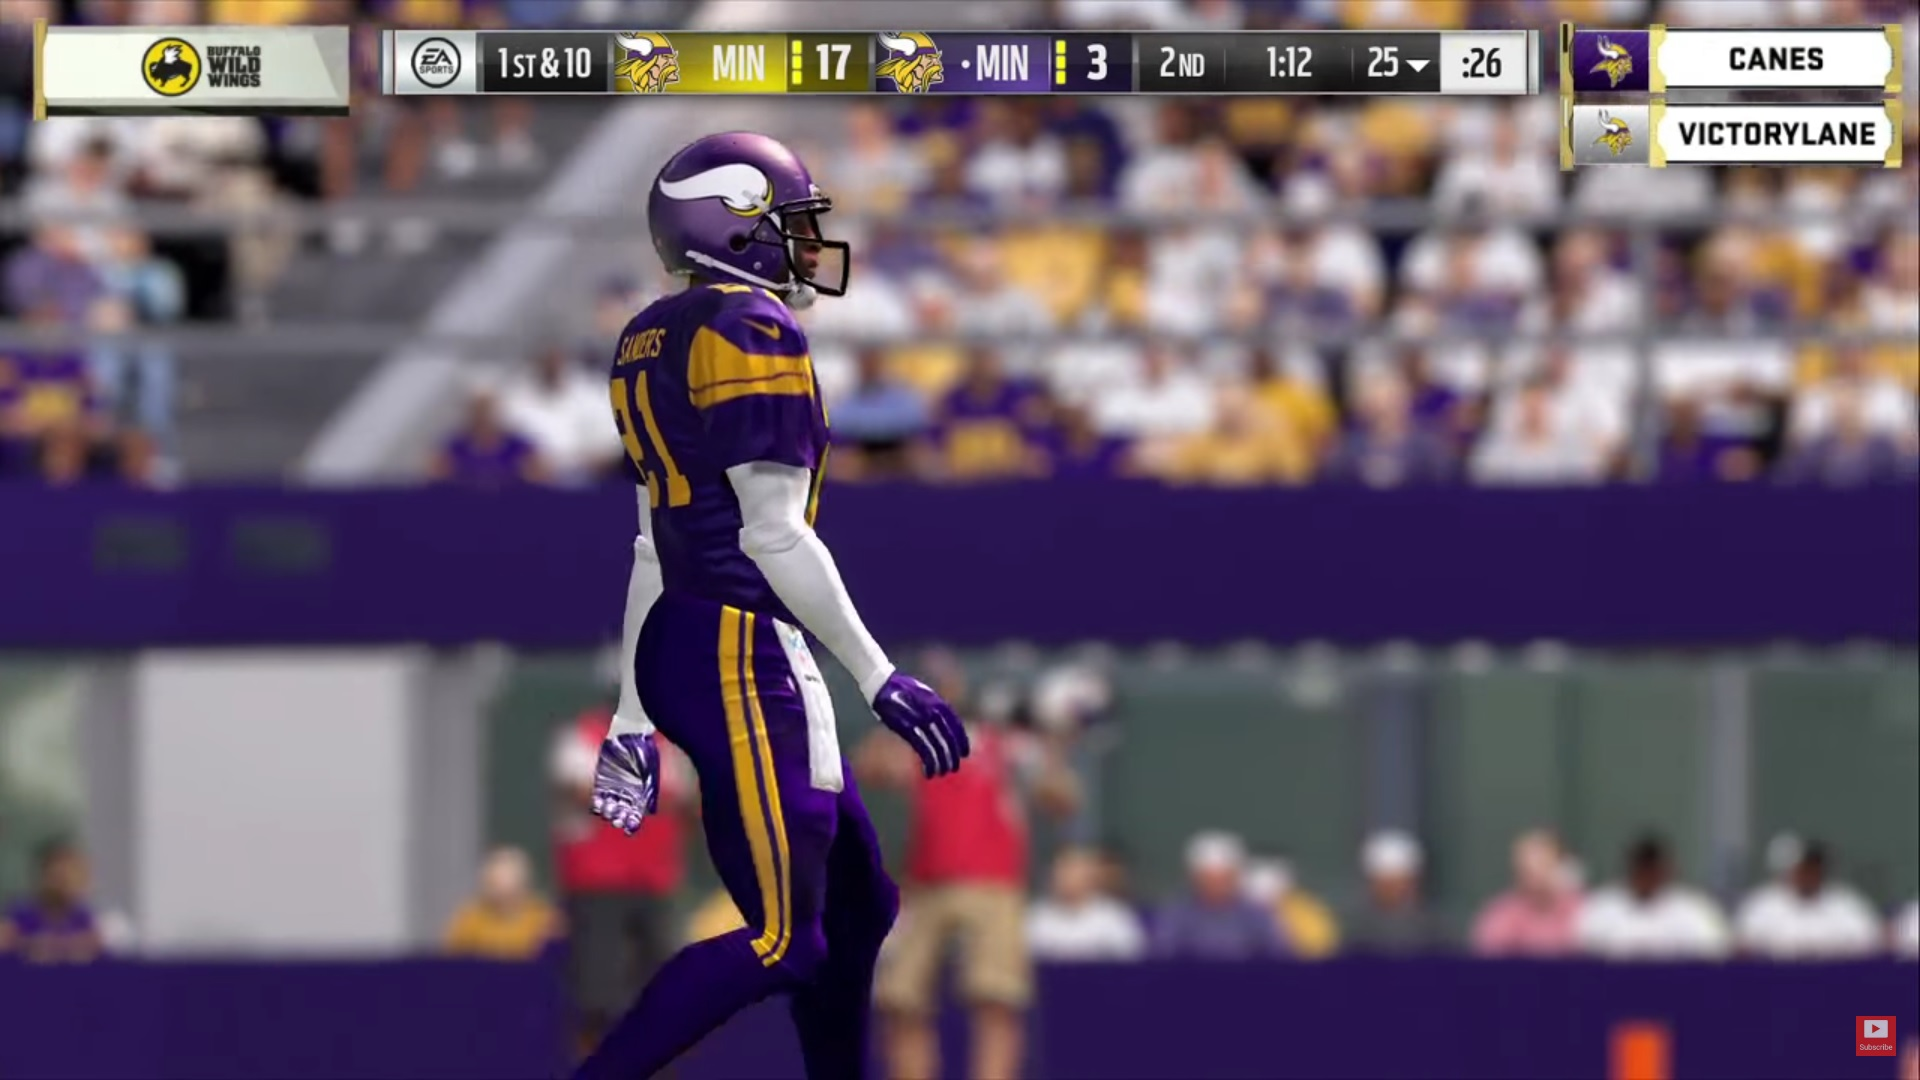 Buffalo Wild Wings In Game During The Vikings Club Series (Photo: Youtube Vikings Club Series)